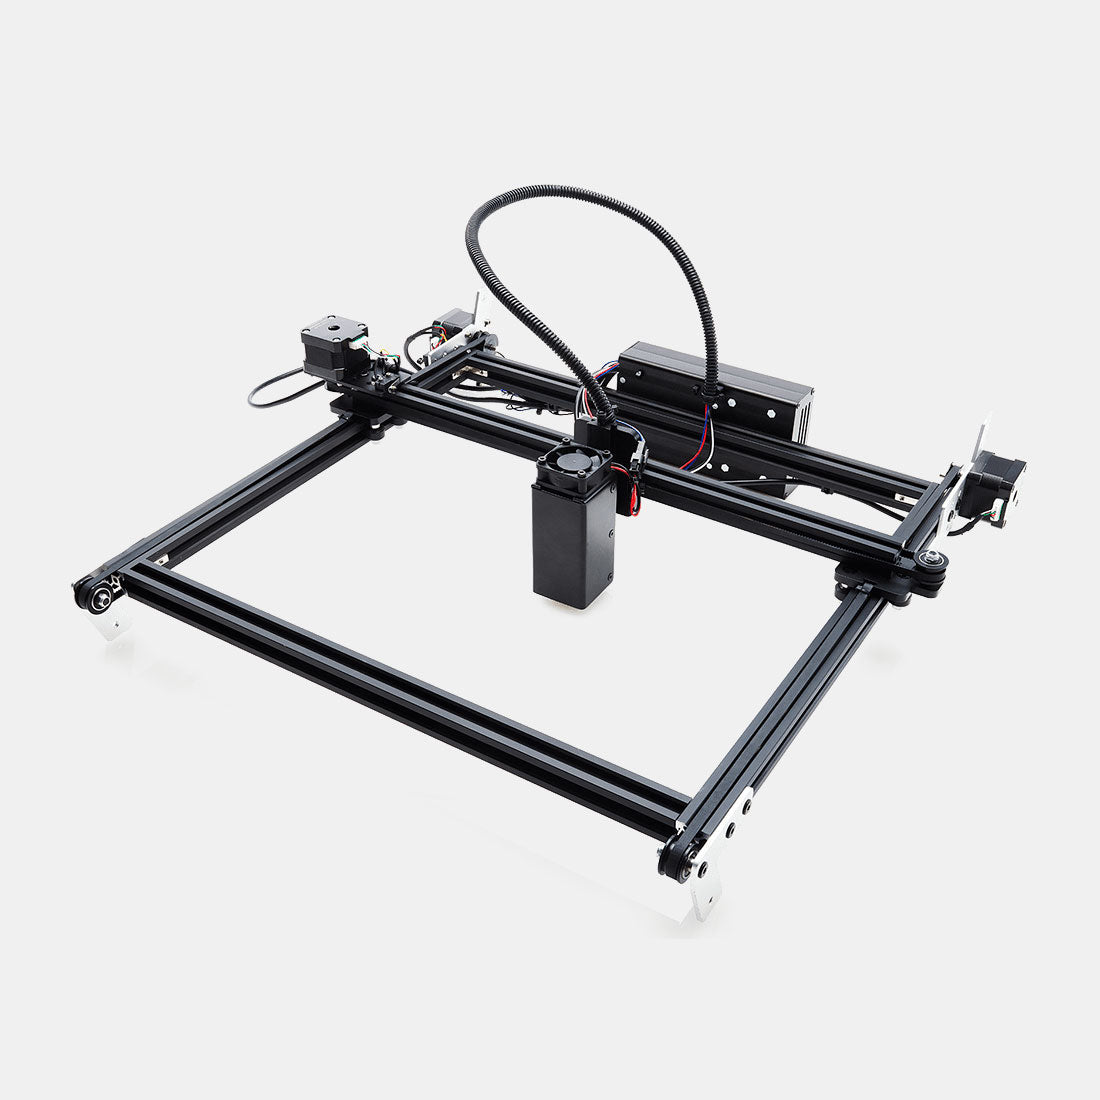 Chwalebne Desktop Laser Cutting Machine - FABOOL Laser Mini – smartDIYs XY27